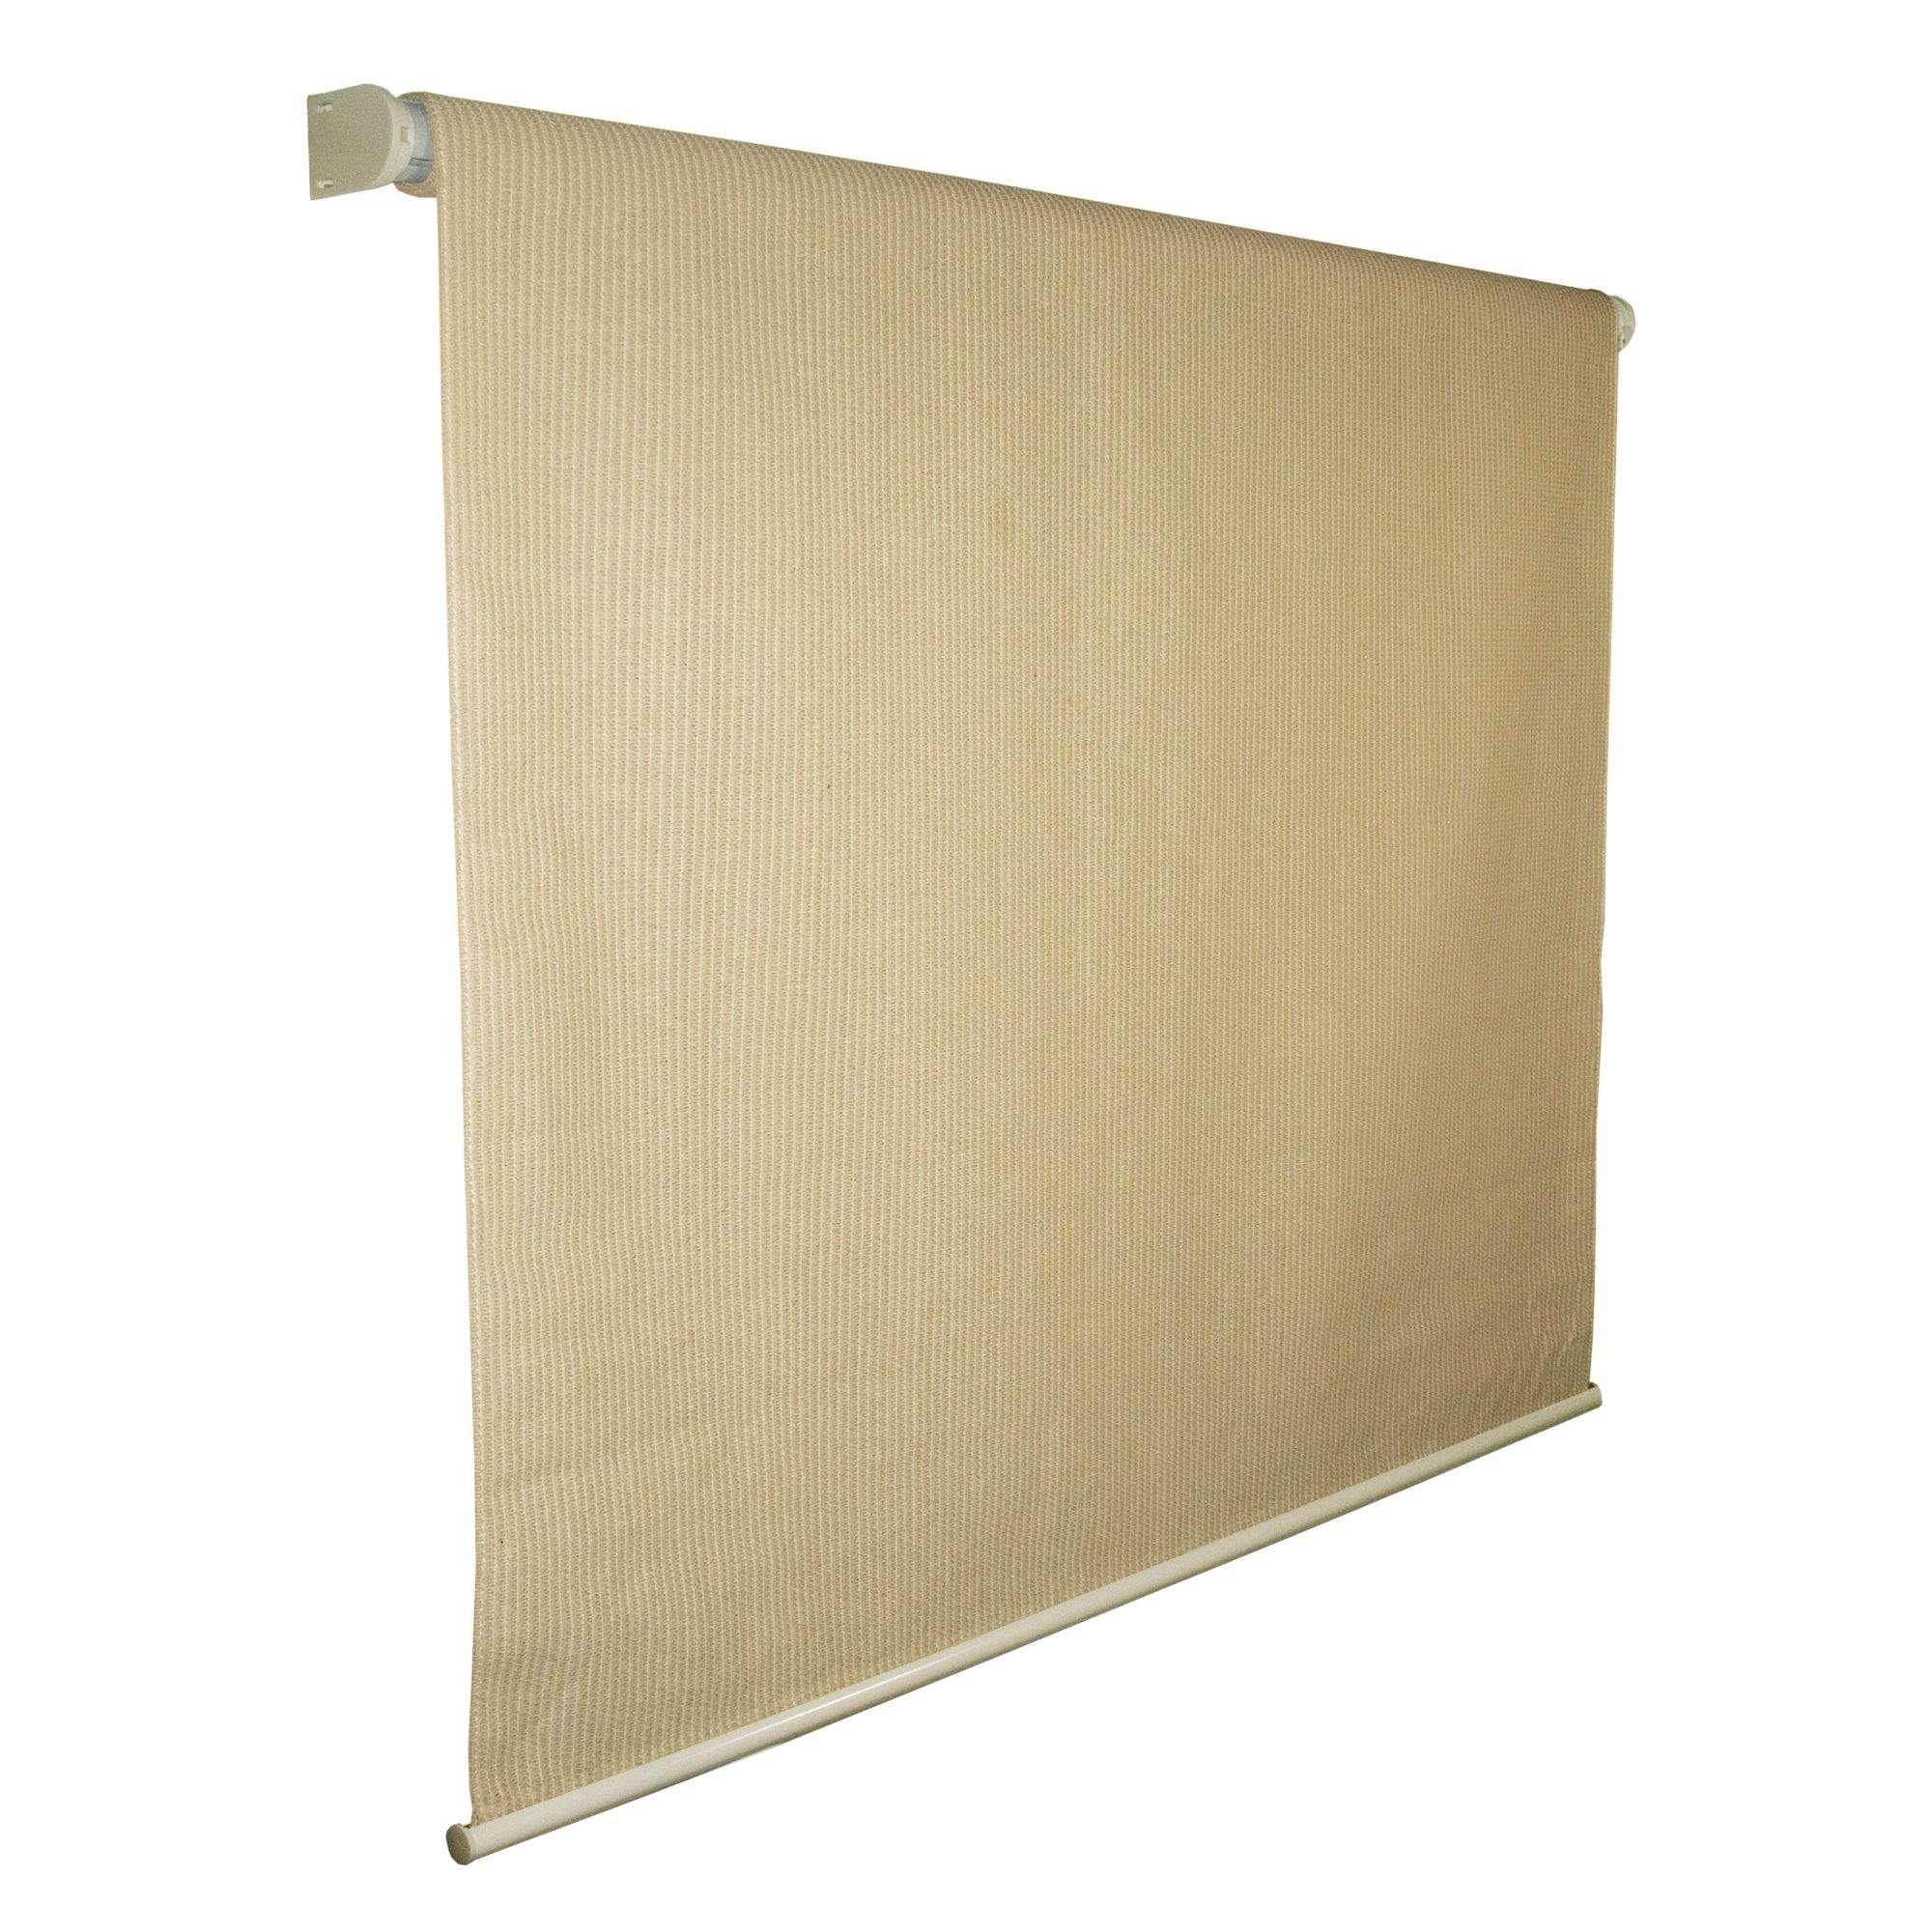 Coolaroo Exterior Roller Shade, Cordless Roller Shade with 90% UV Protection, No Valance, (4' X 6'), Southern Sunset